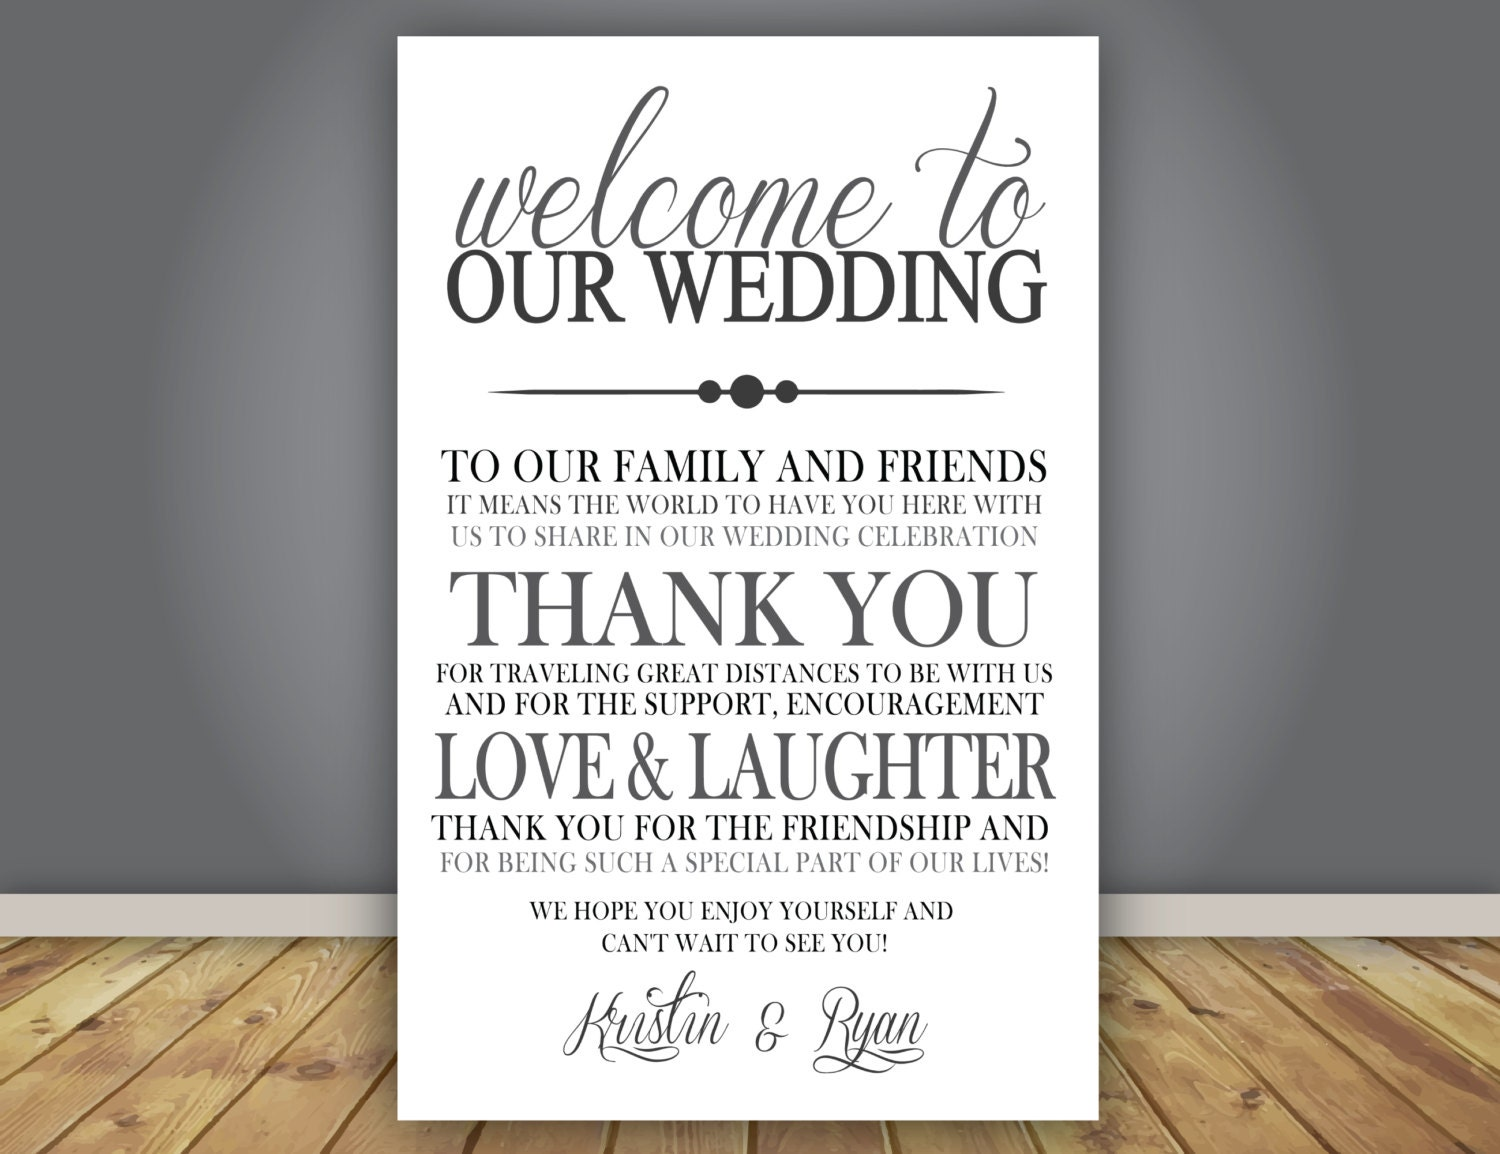 Thank You Letter For Wedding Guests